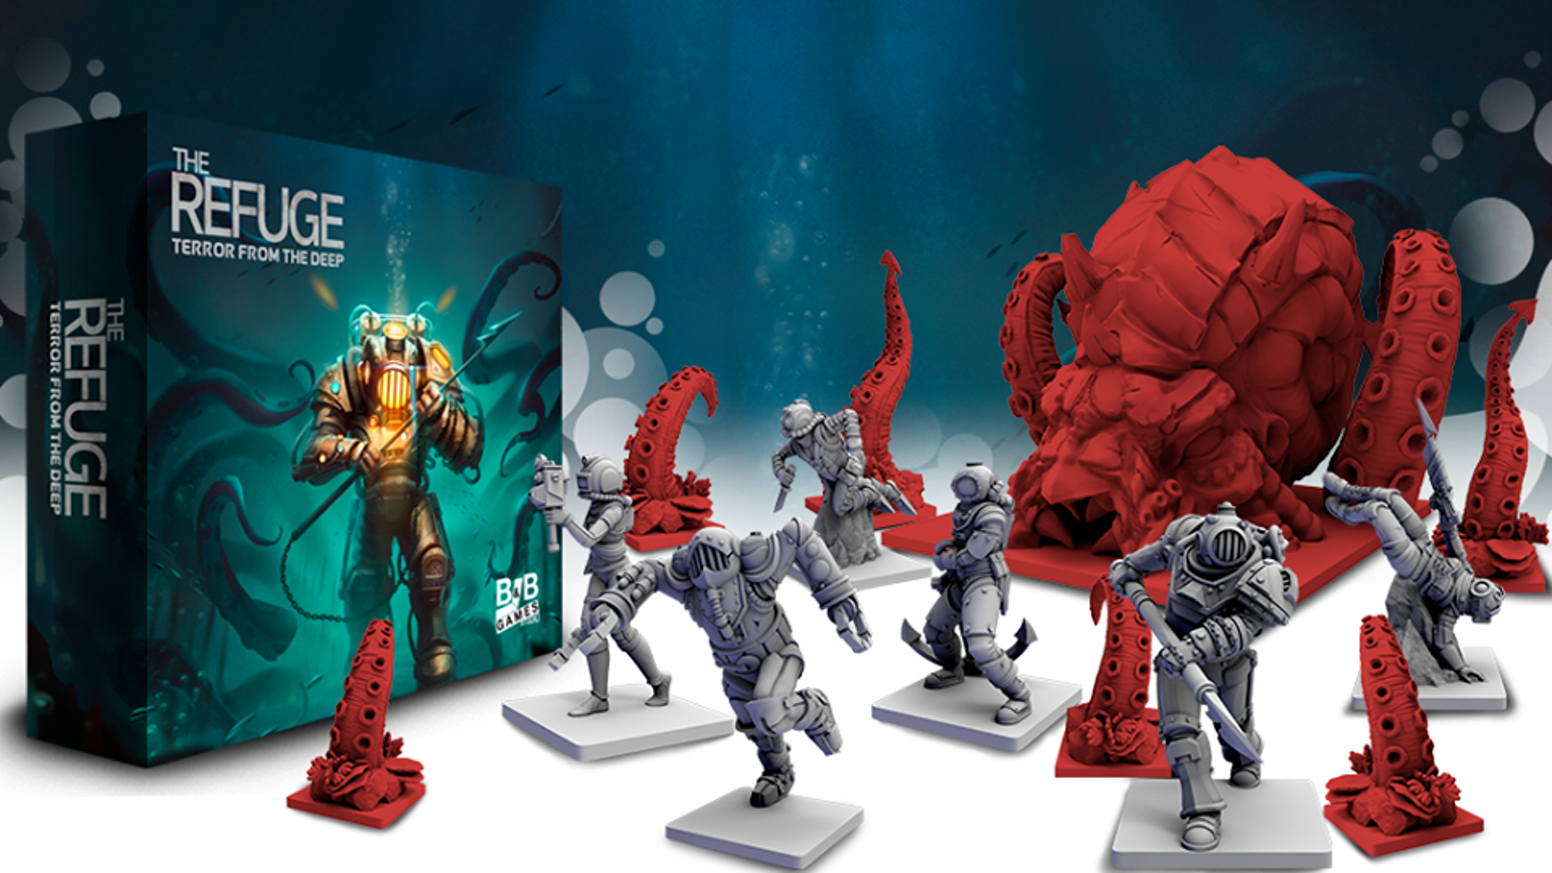 Can you escape? Find out in this 1-6 player board game with gorgeous miniatures of steampunk divers and a deadly Kraken!